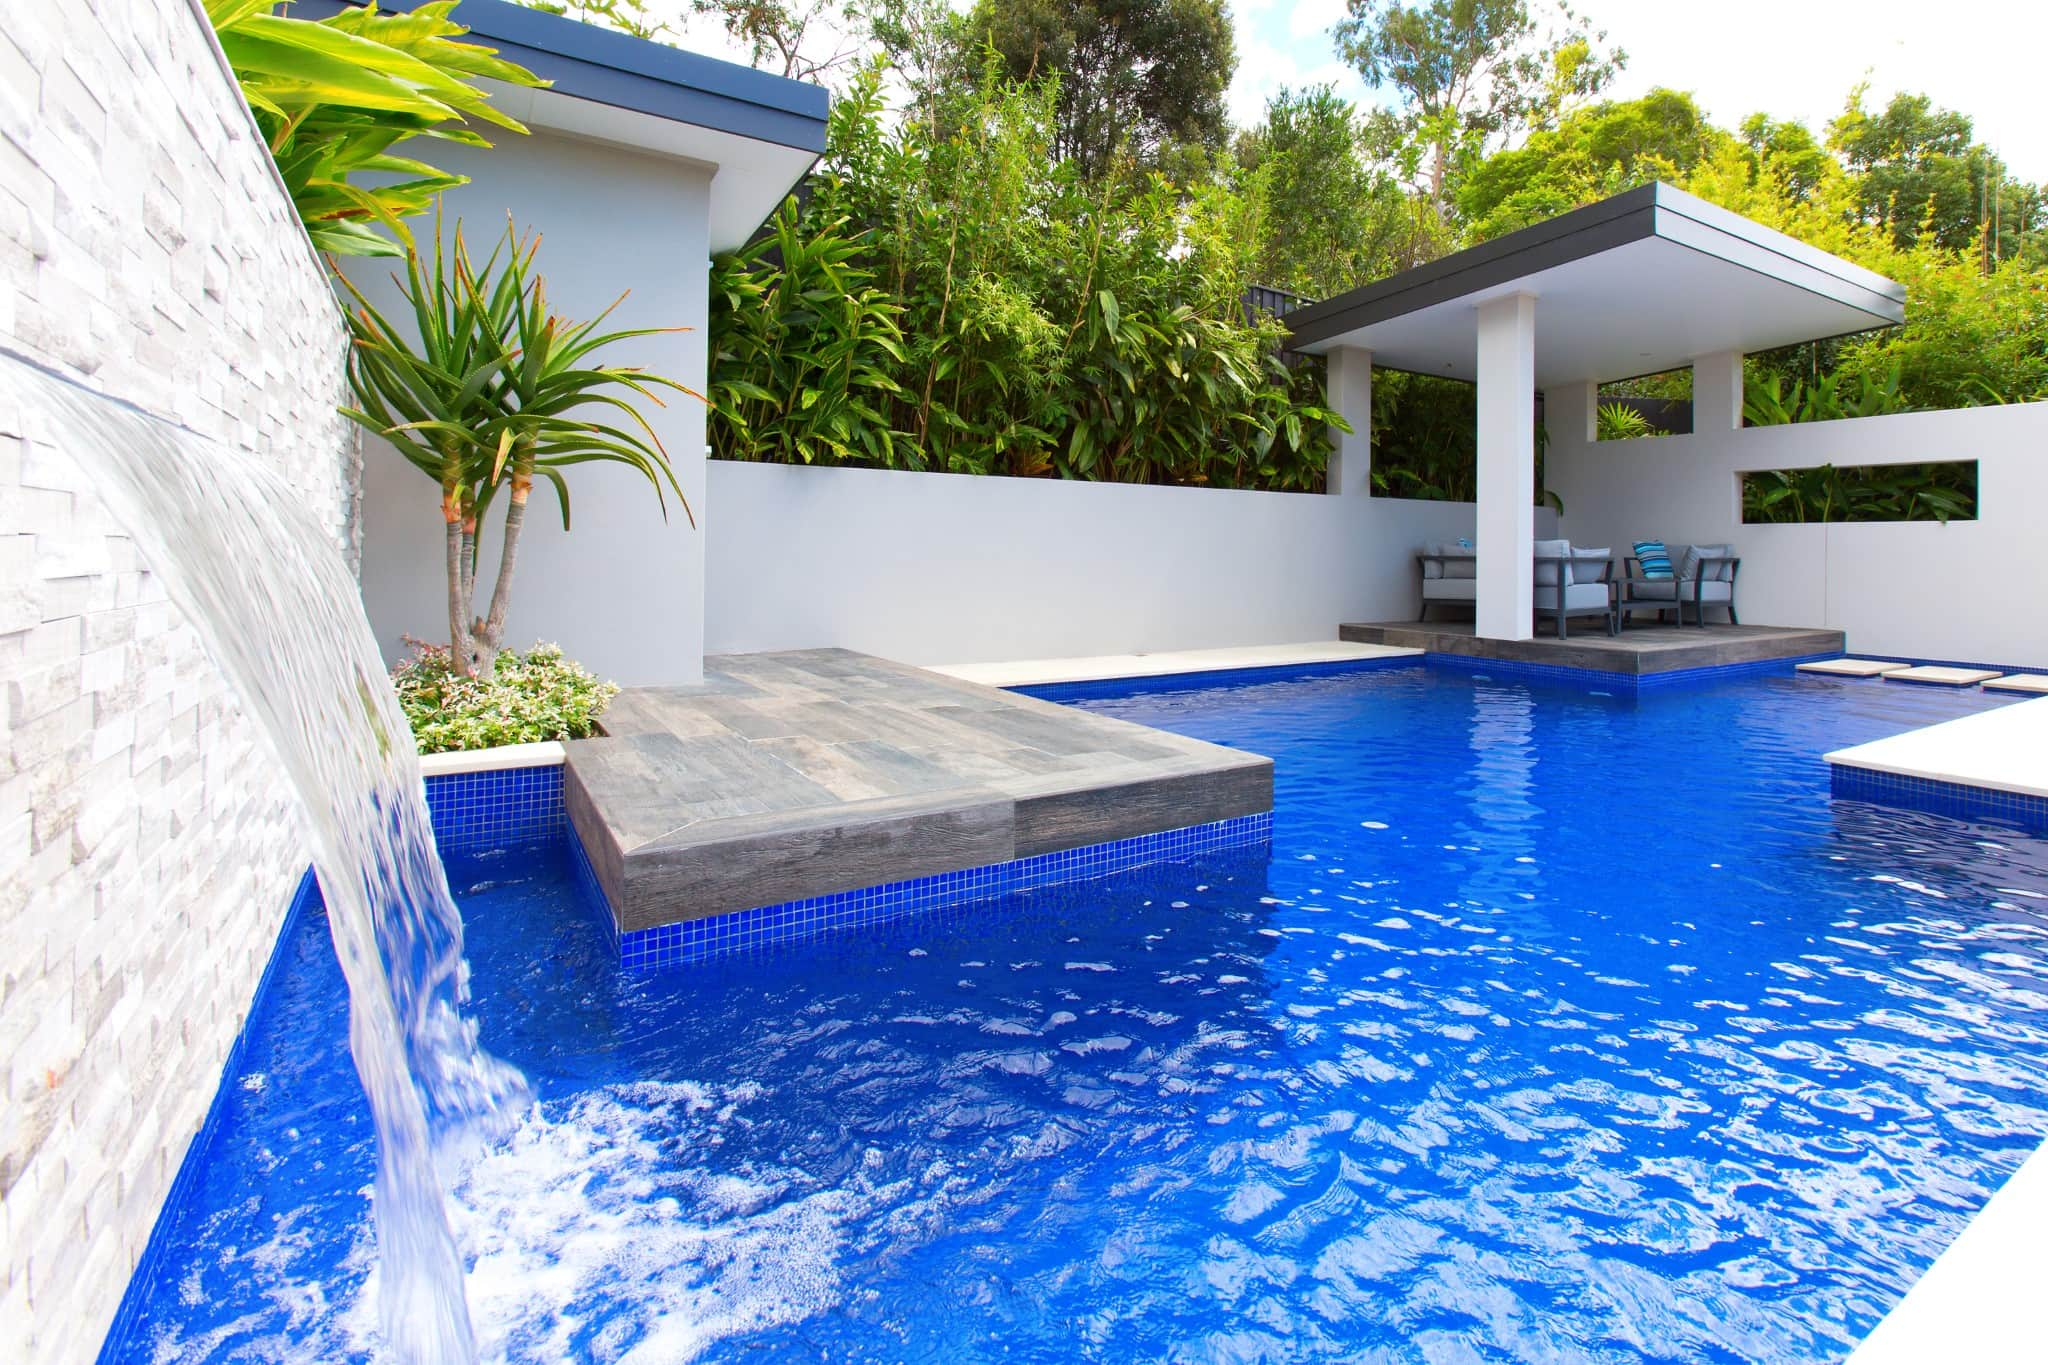 Fully Tiled Ezzari Glass Mosaic pool with sheet fountain in Riverview